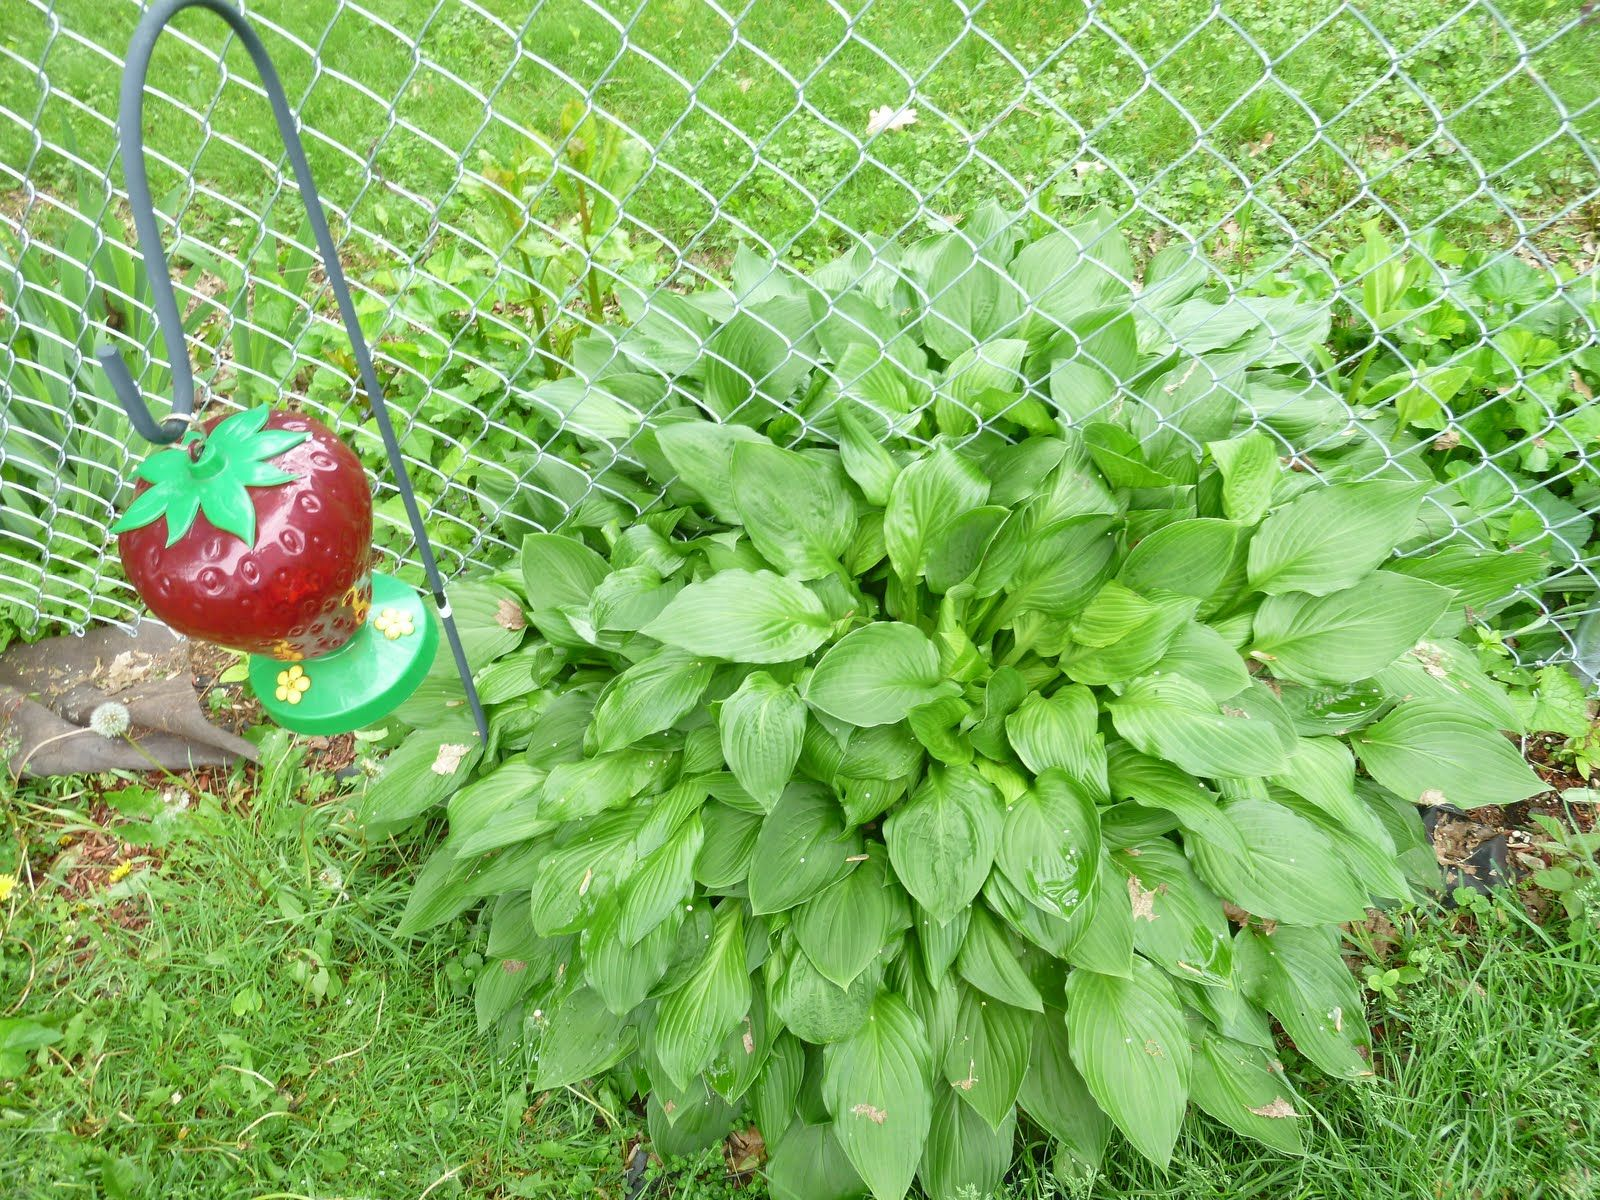 Garden Answers Plant Identification App Ground cover